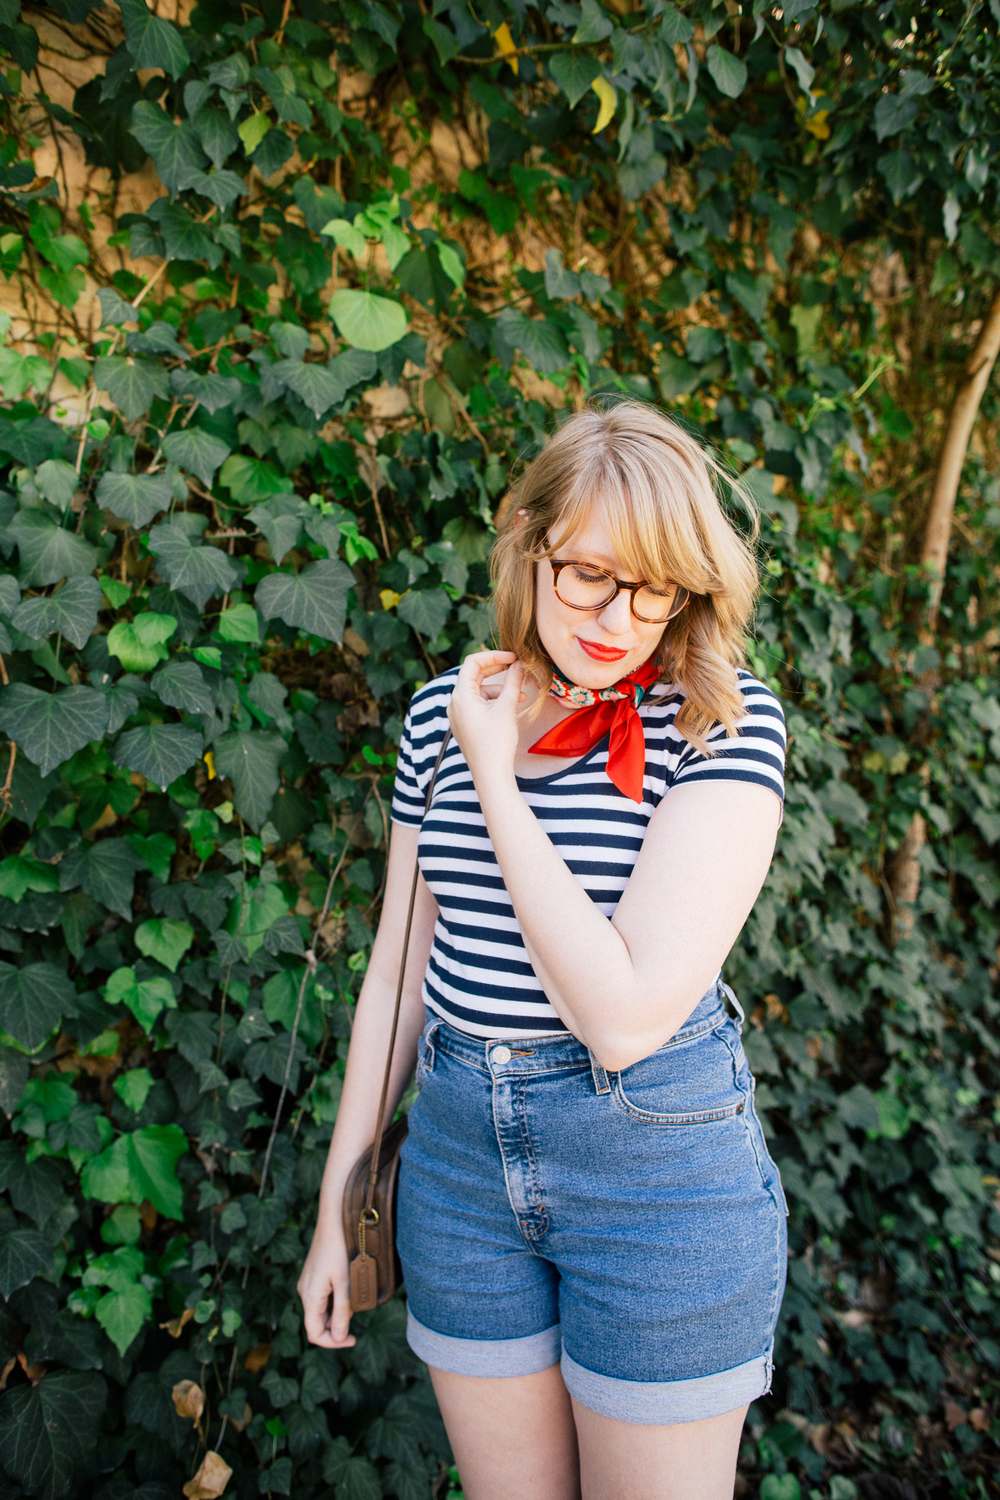 Nicole of Writes Like A Girl: Neck scarf + striped tee + high-rise shorts